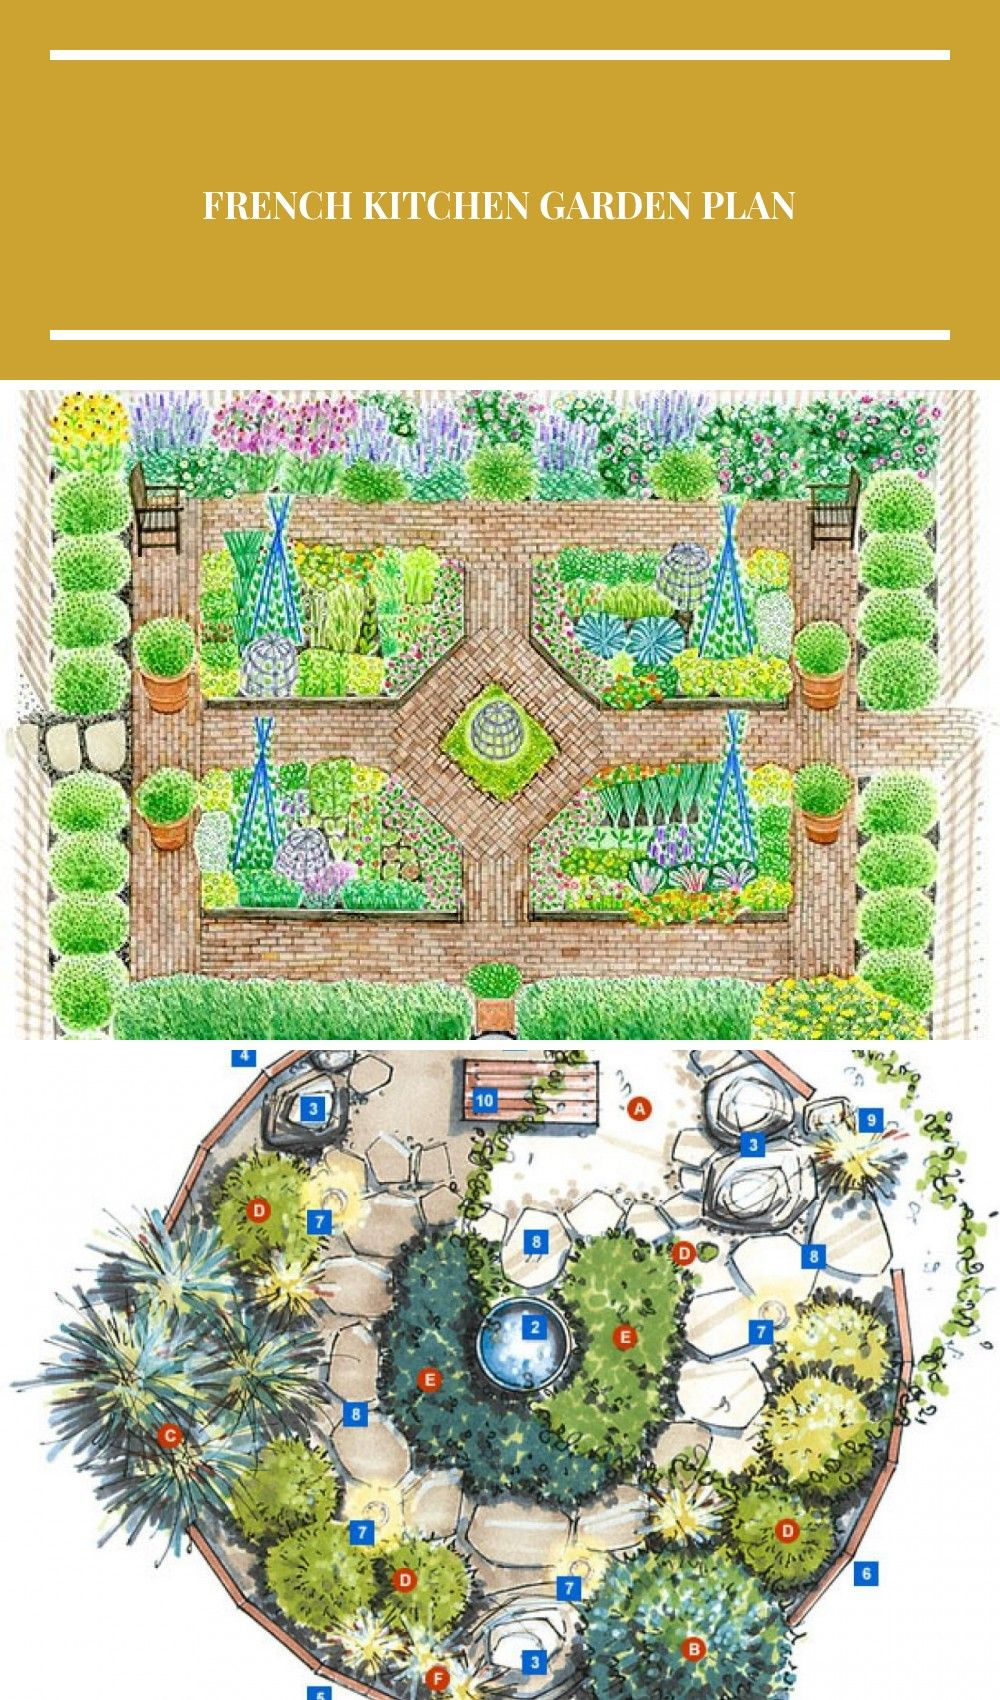 Old world monastery gardens inspire today's useful and ornamental ...